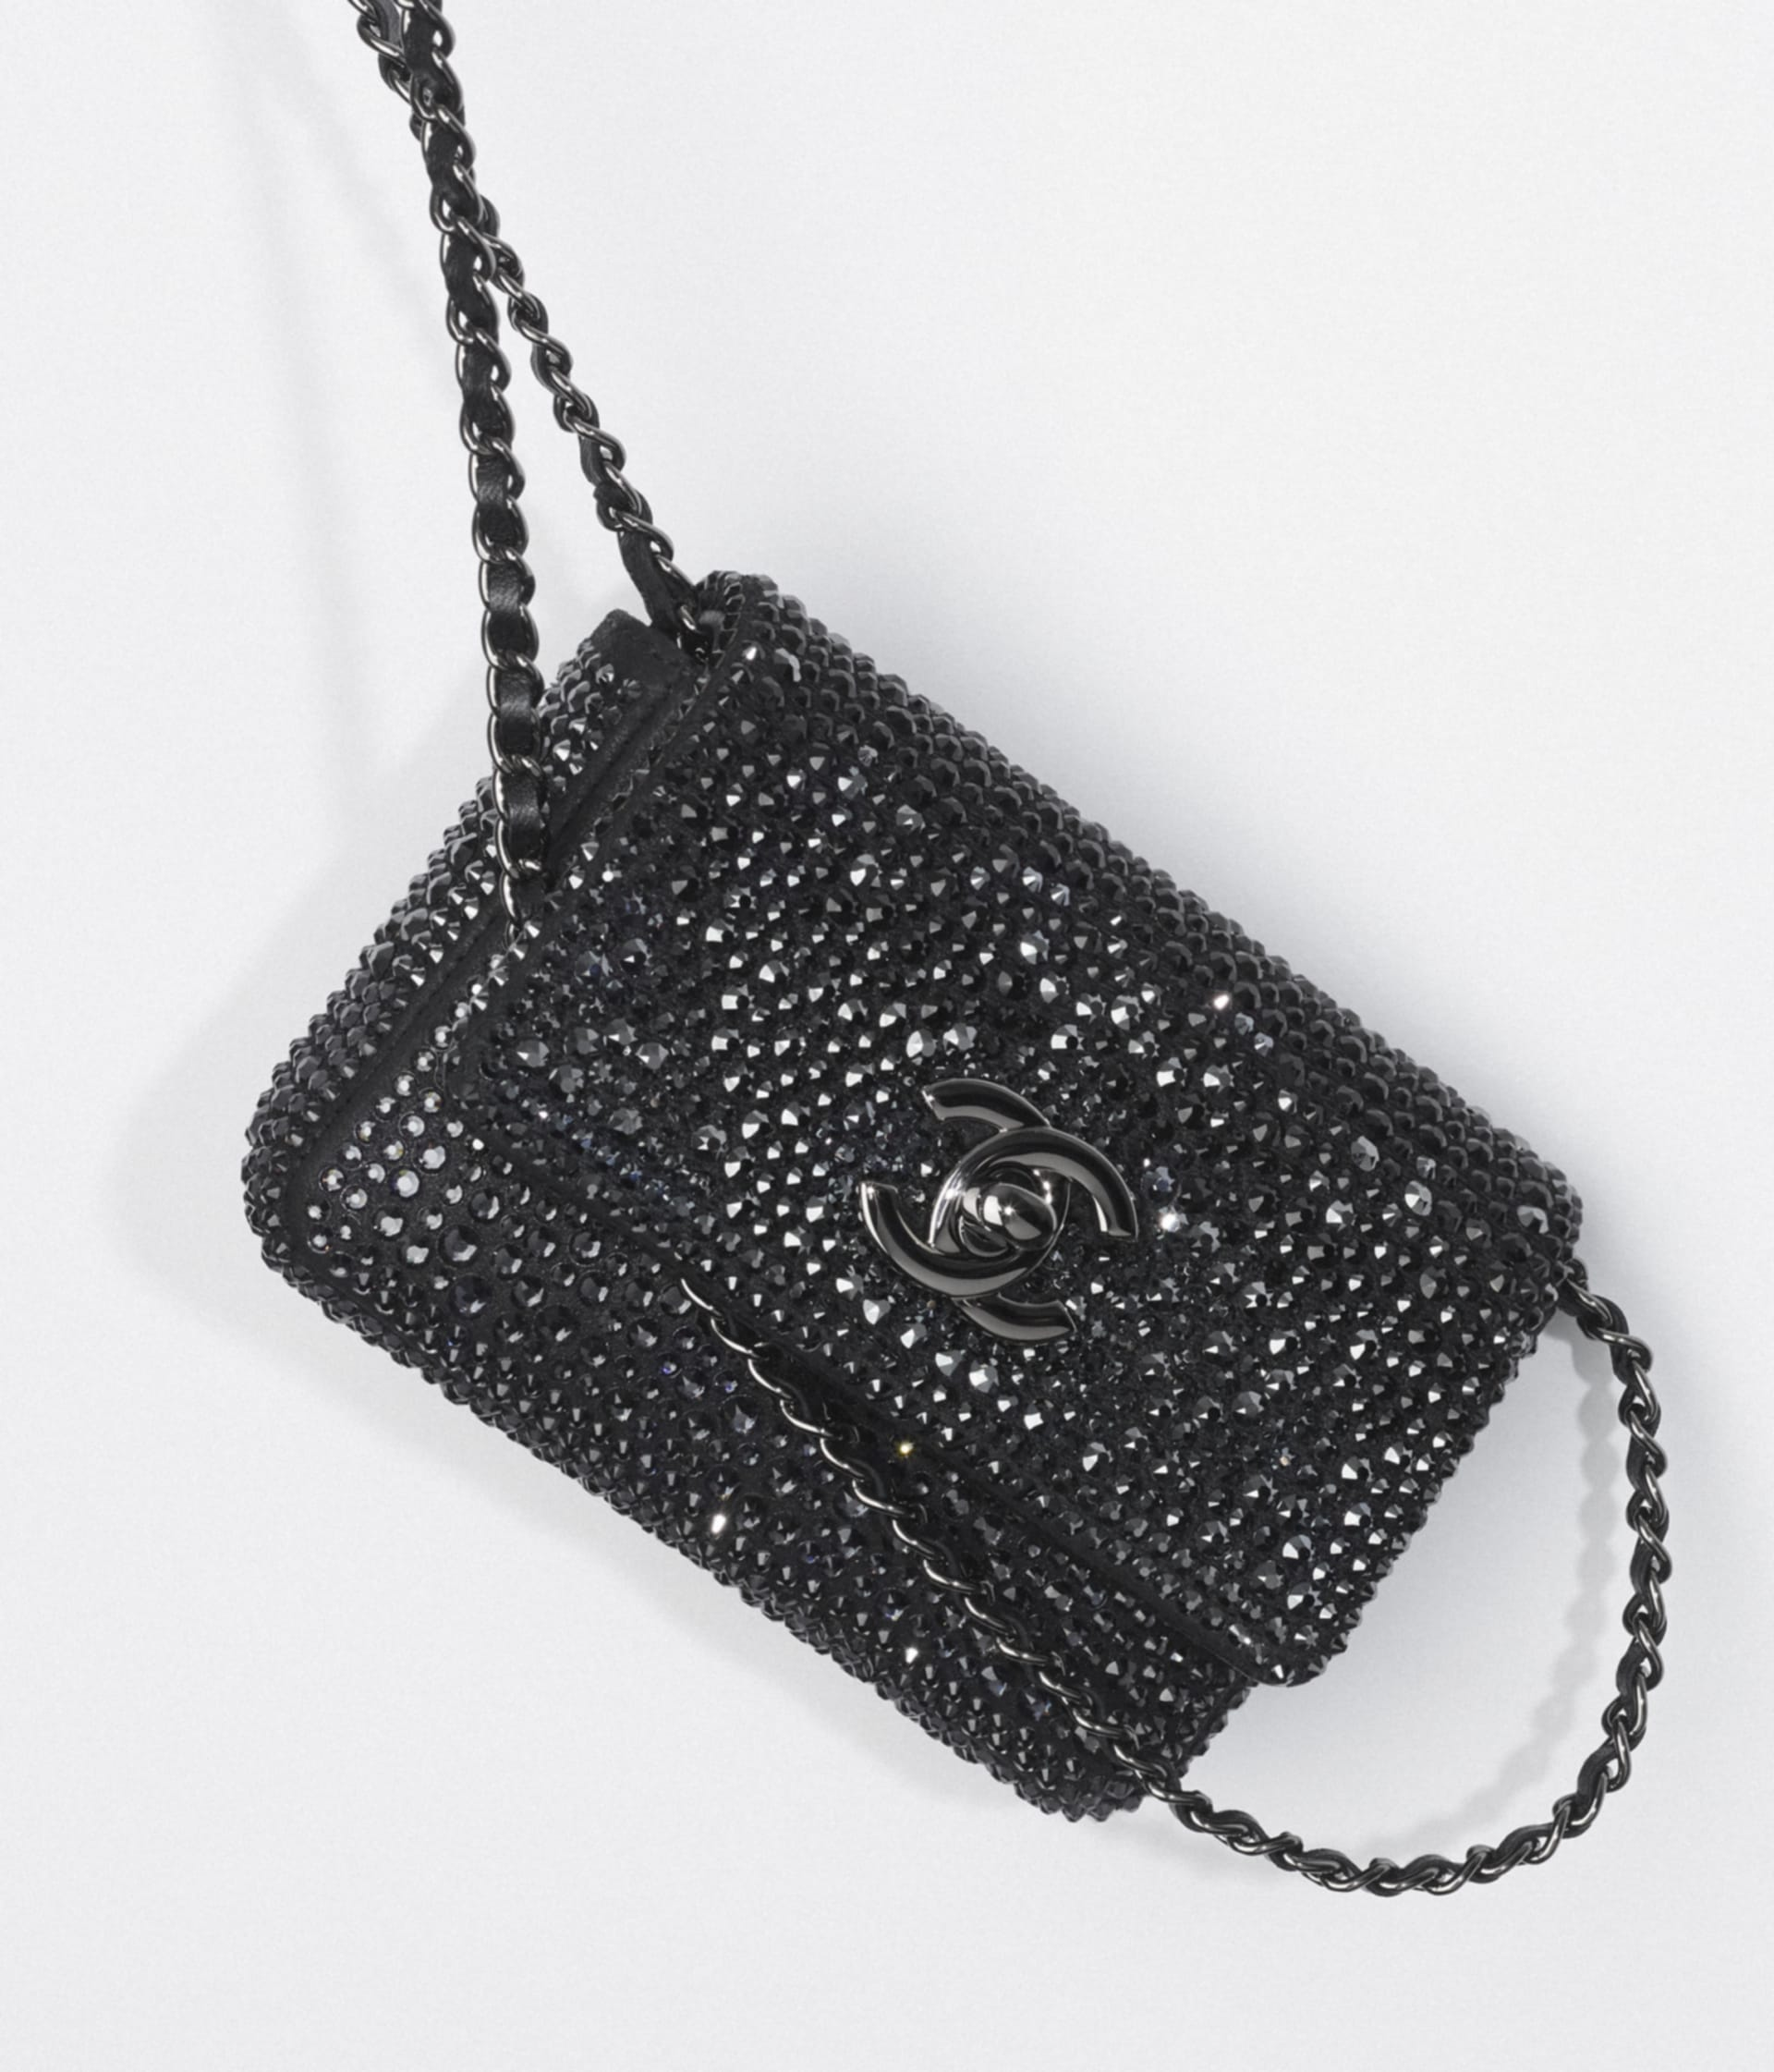 image 3 - Clutch with Chain - Strass, Lambskin & Ruthenium-Finish Metal - Black